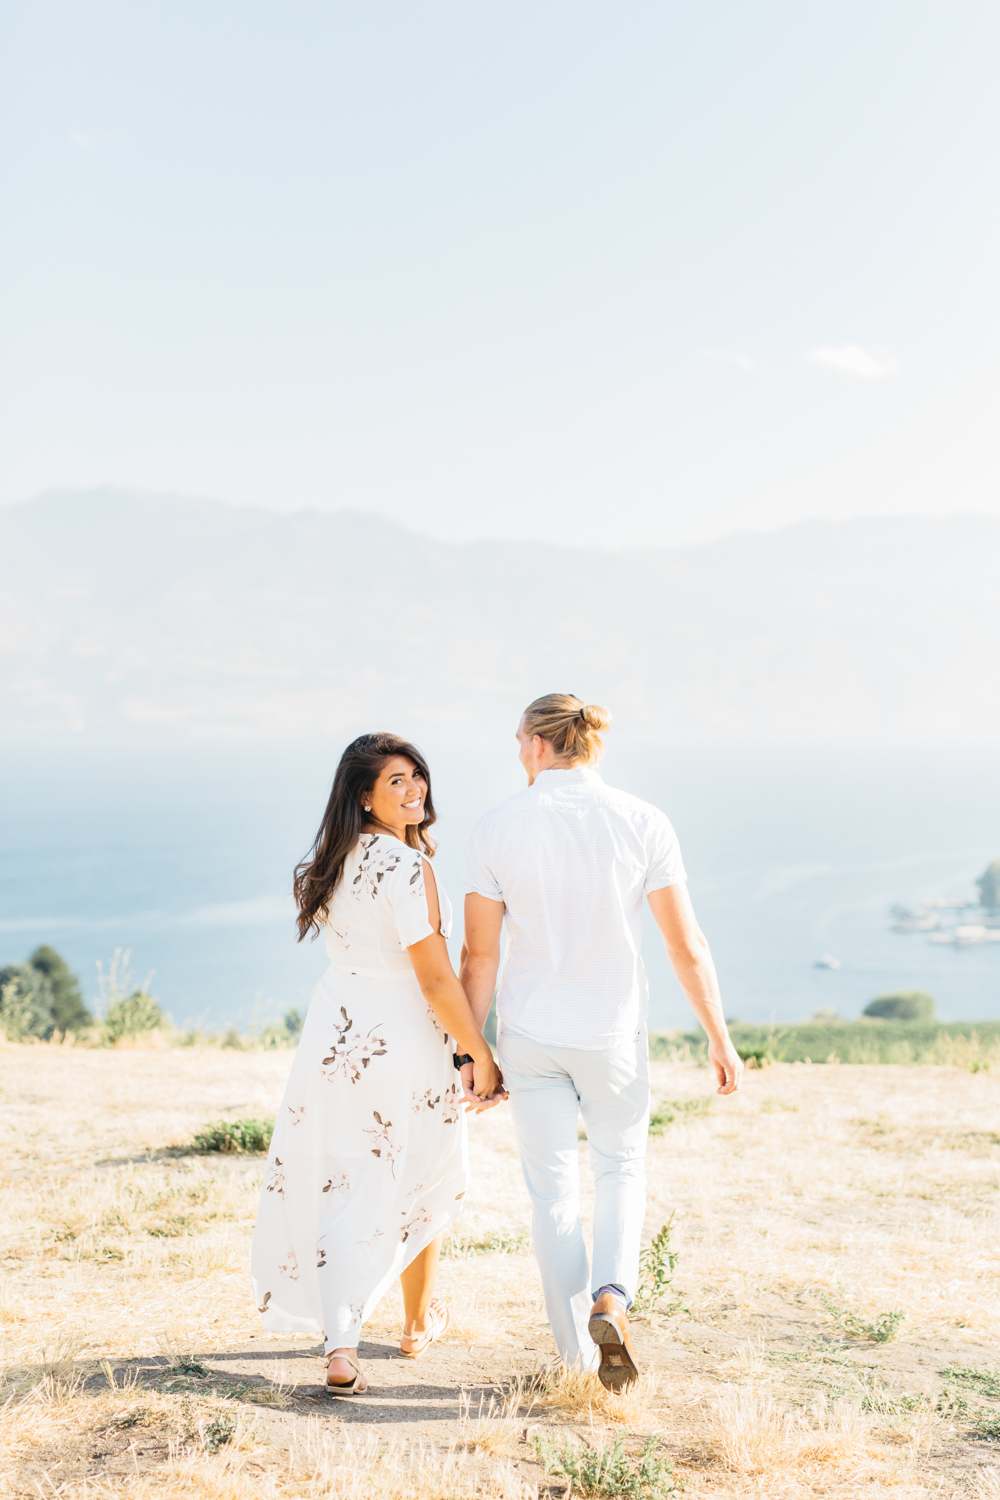 Couple walking with mountains in the background at Quails's Gate